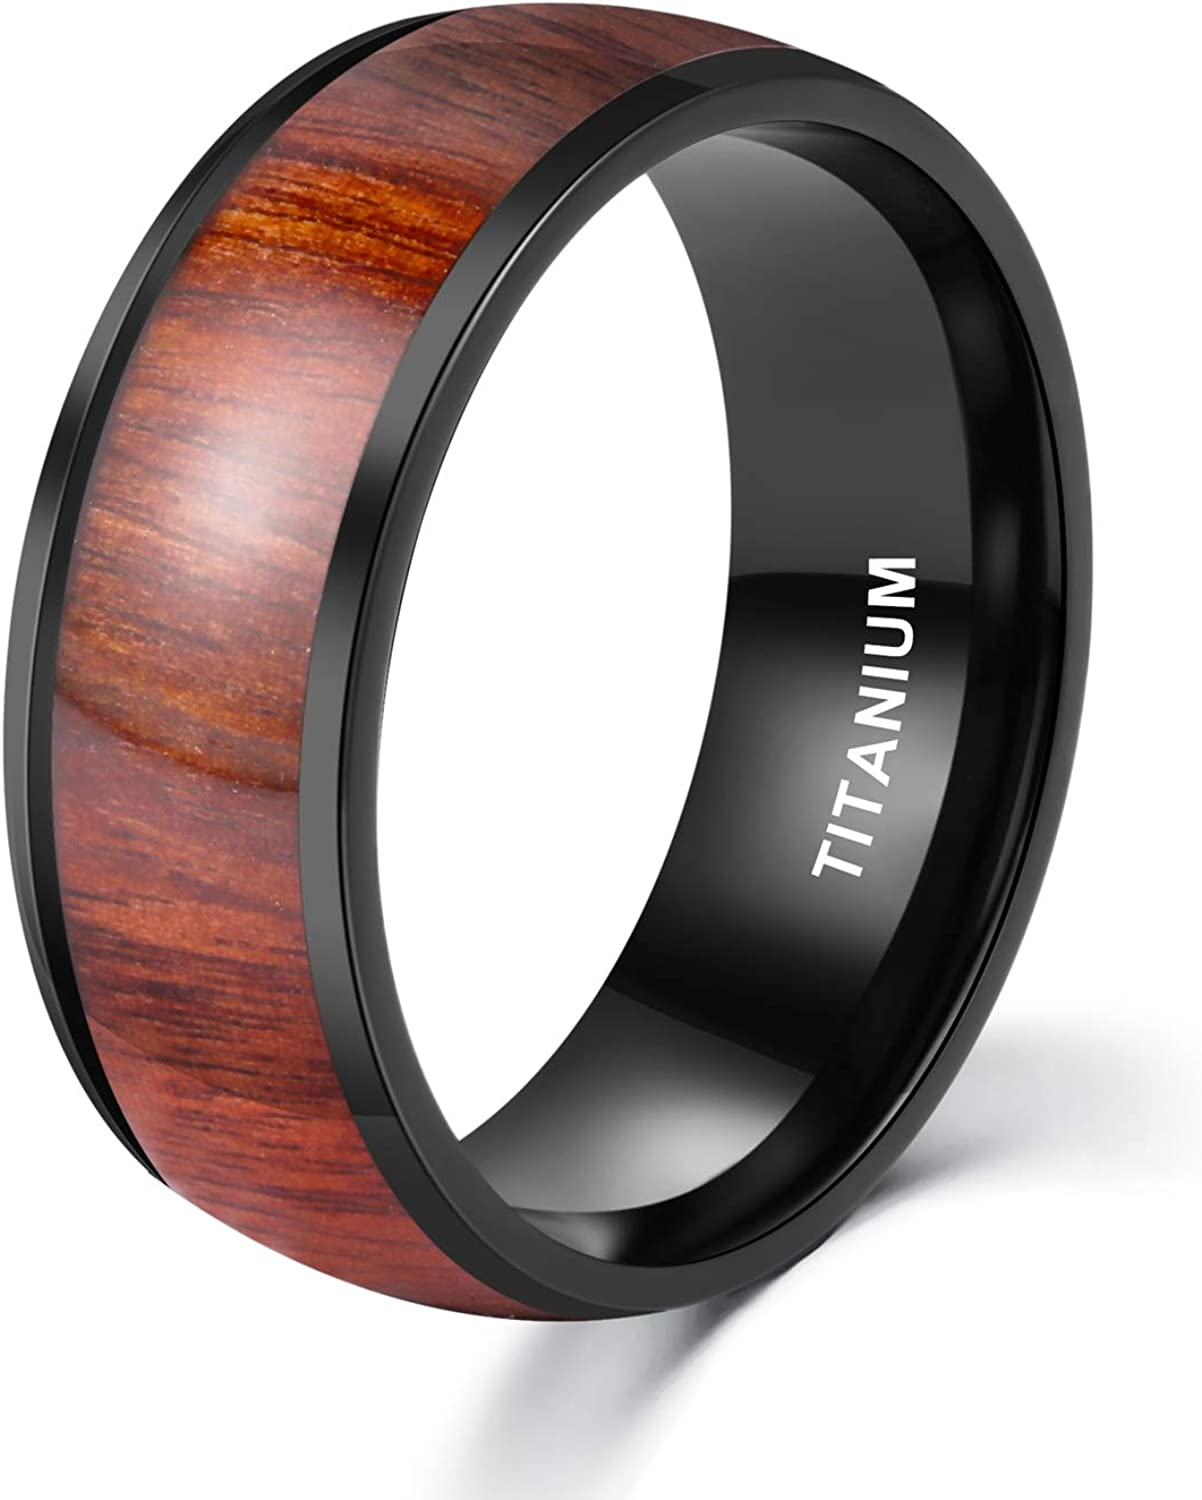 High quality new POYA 8mm Black Titanium Ring with Domed Inlay Bombing new work Comfort Wood Edges